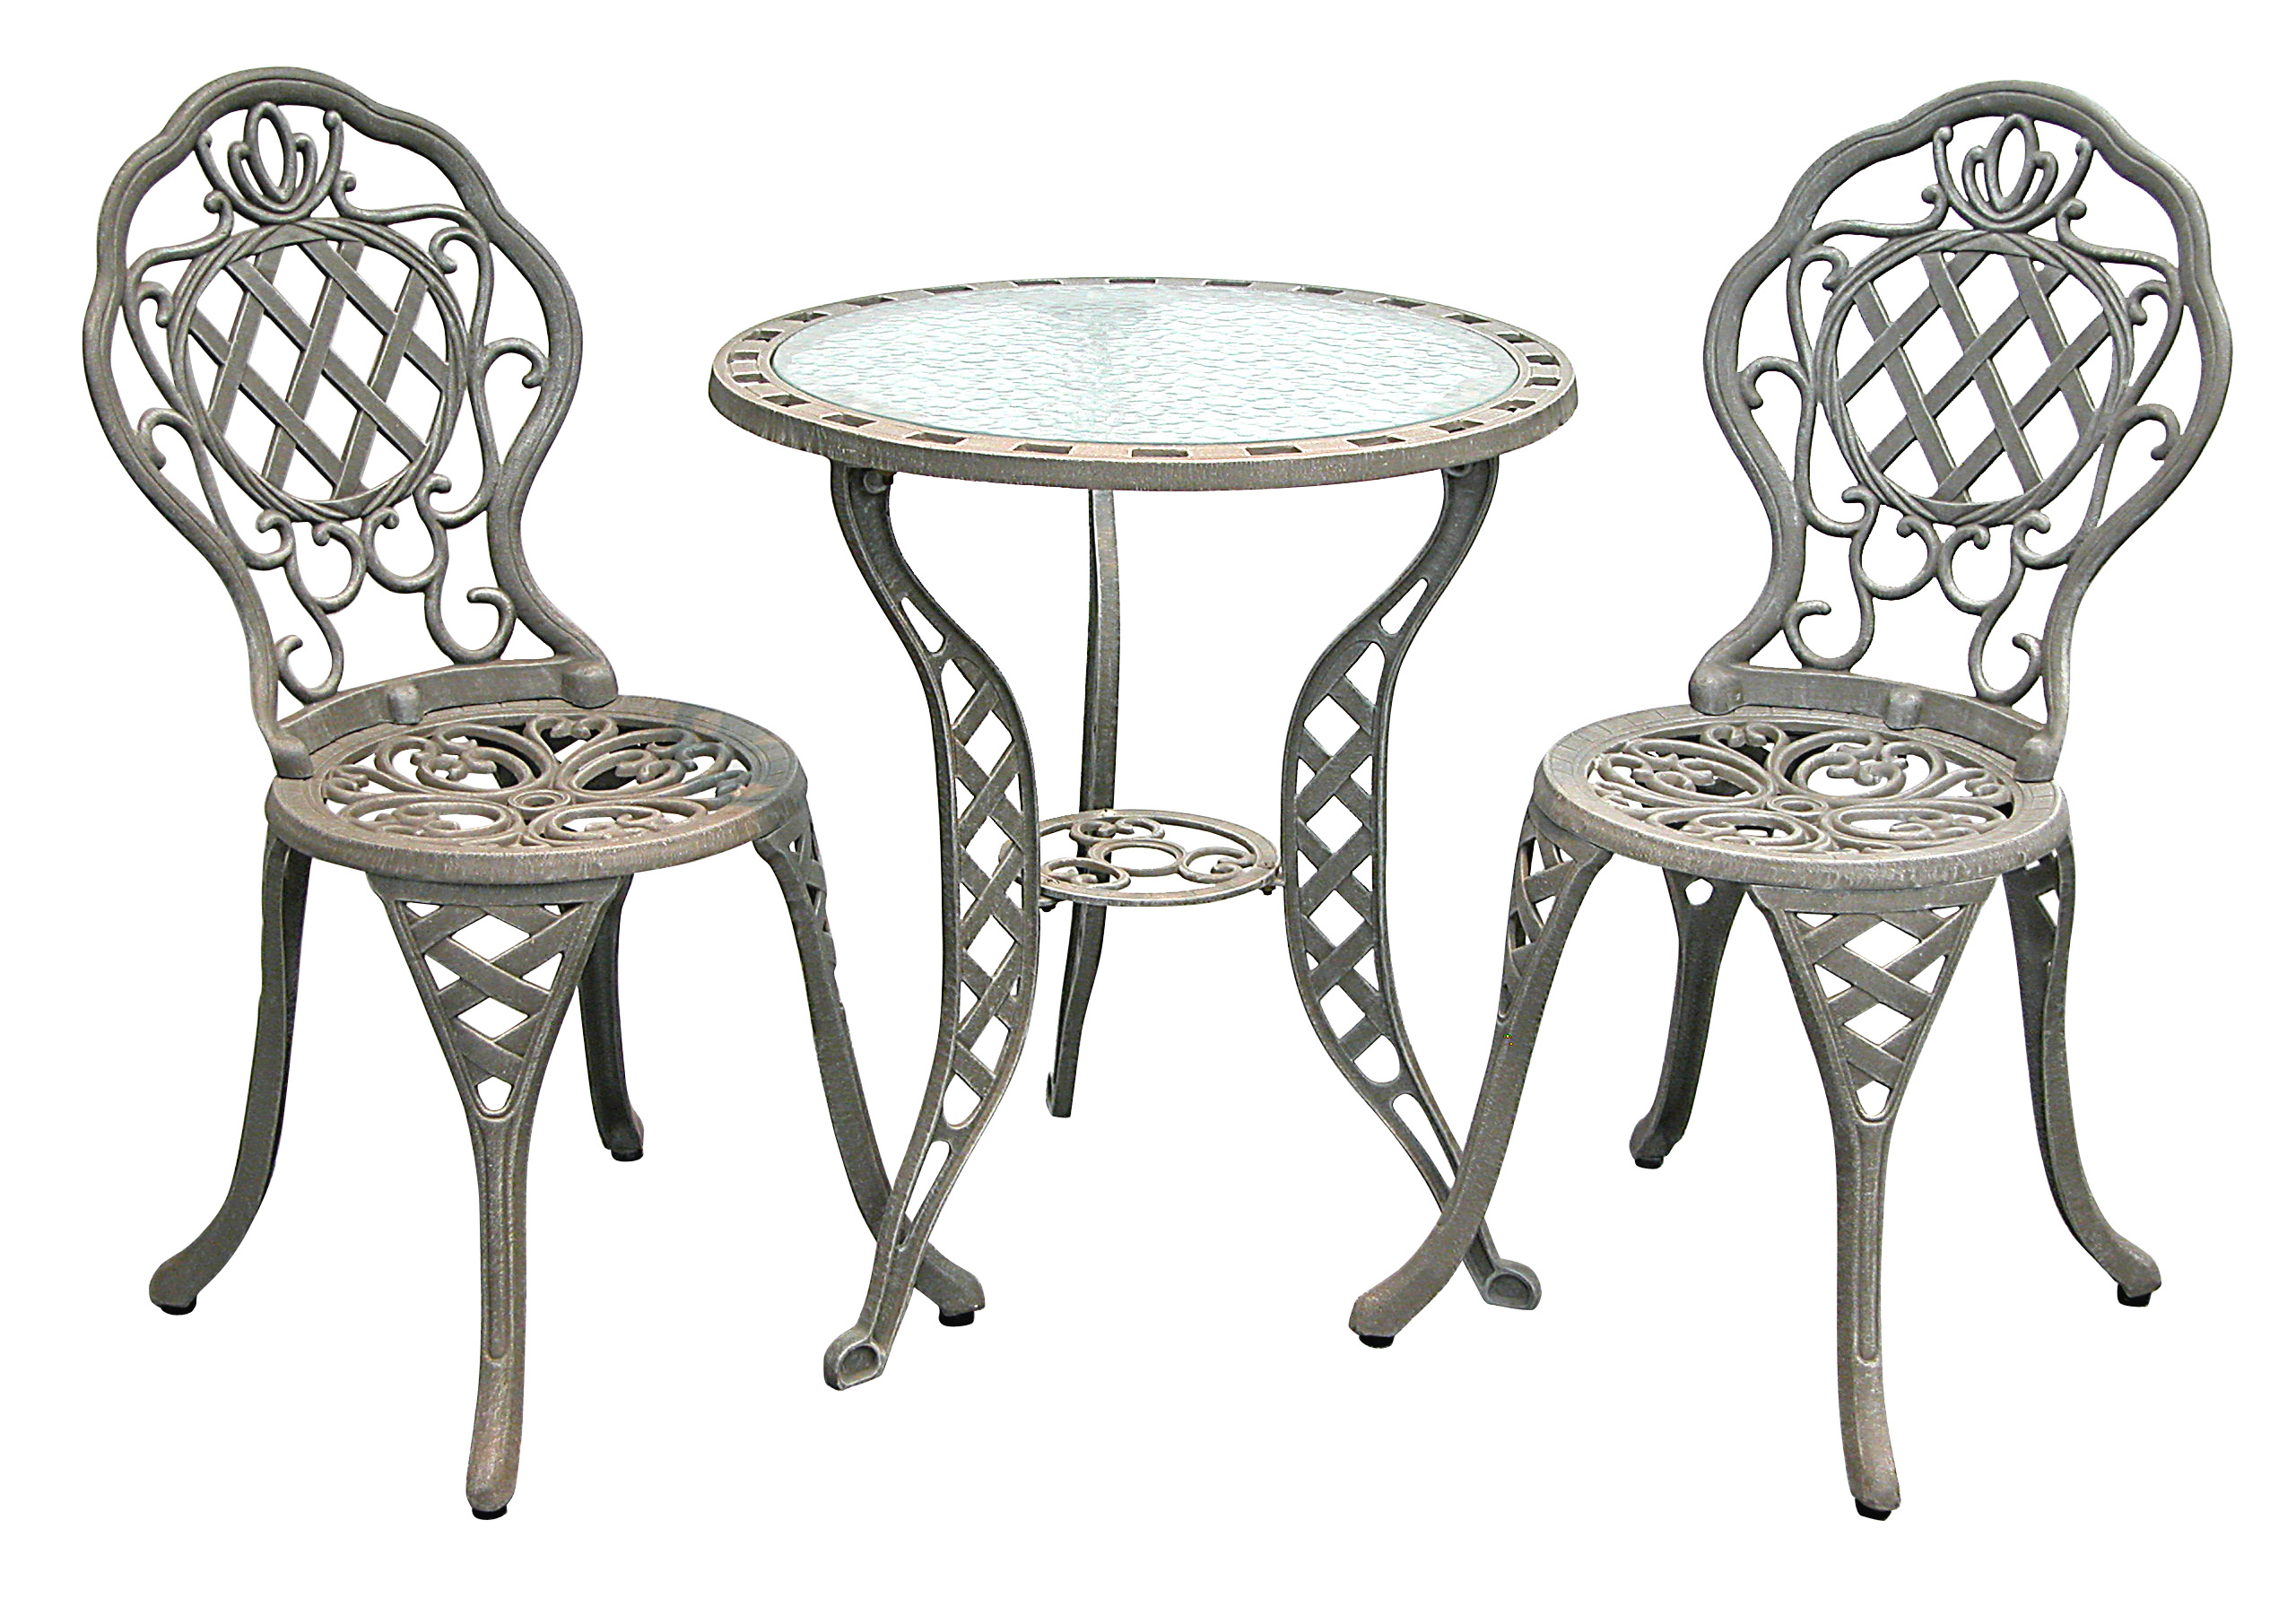 Patio Furniture Bistro Set Cast Aluminum Iron Regis